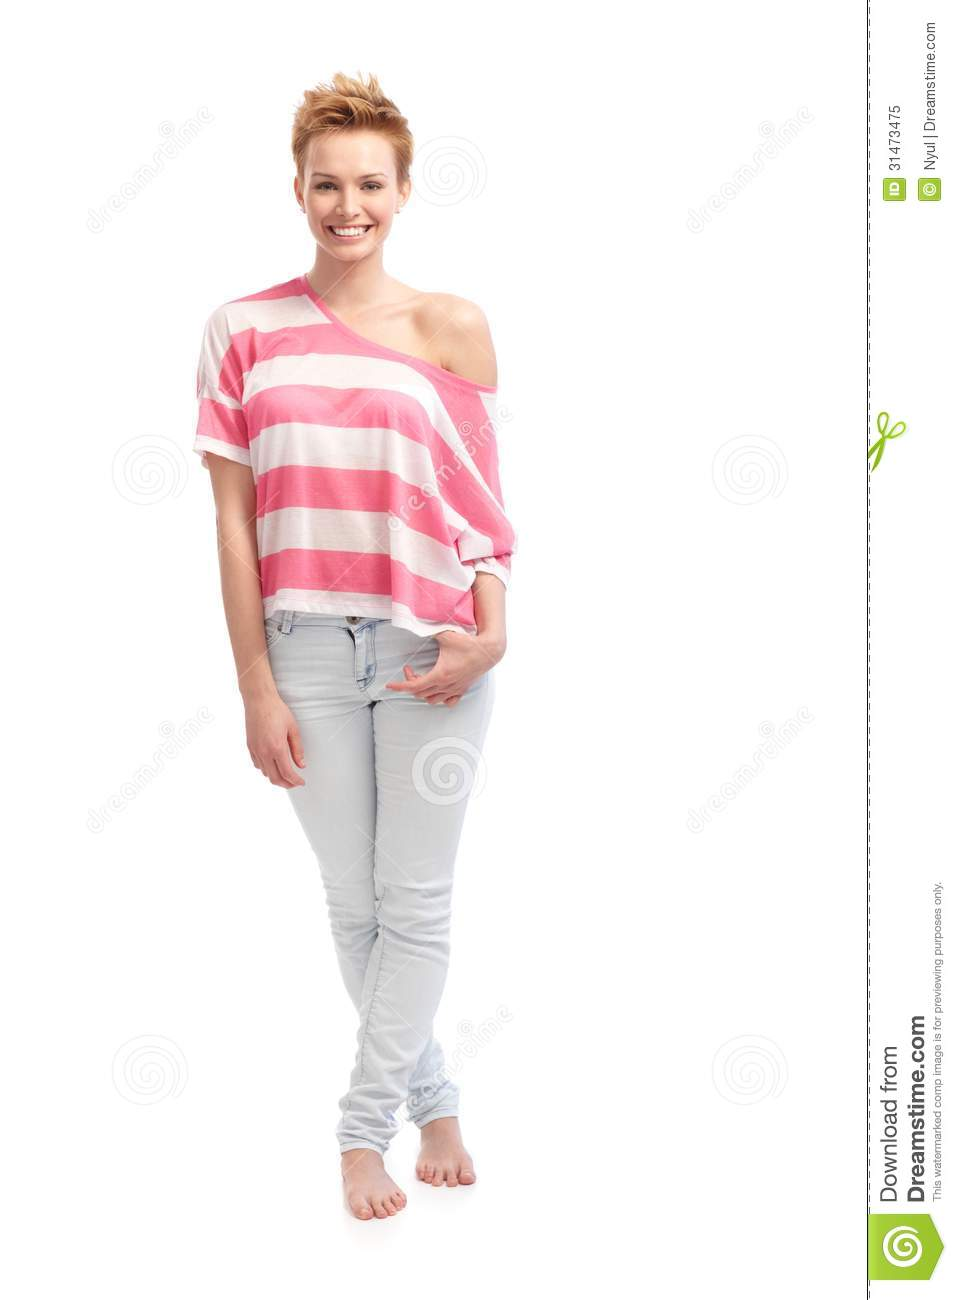 Trendy Girl In T-shirt And Jeans Stock Image - Image: 31473475